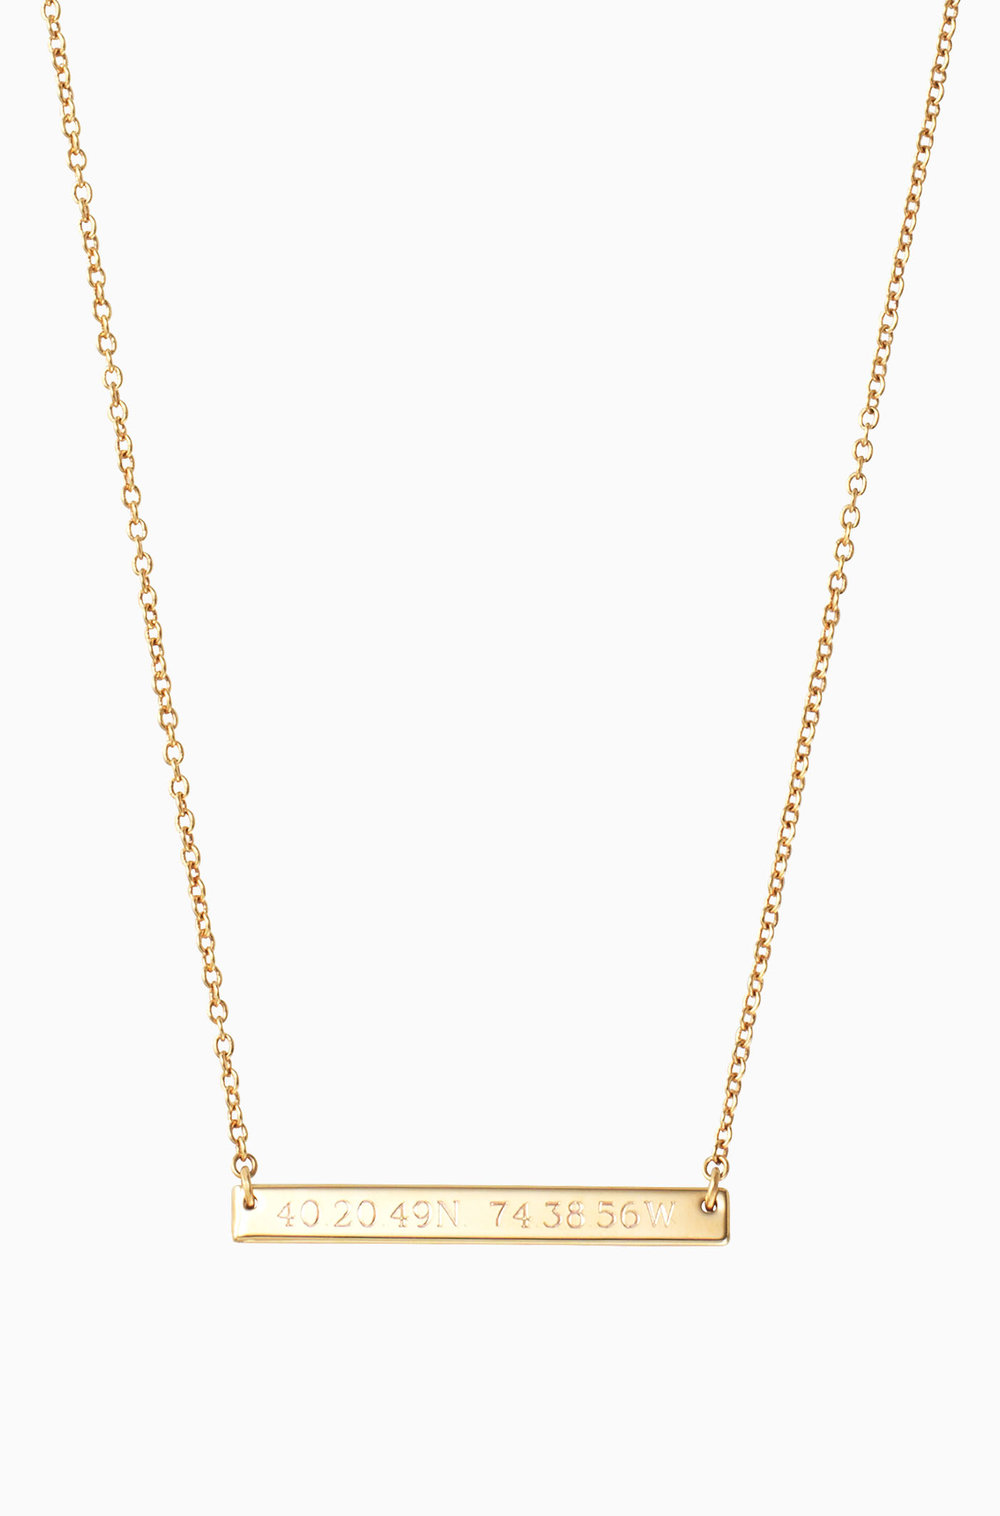 Personalized Bar Necklace - $69